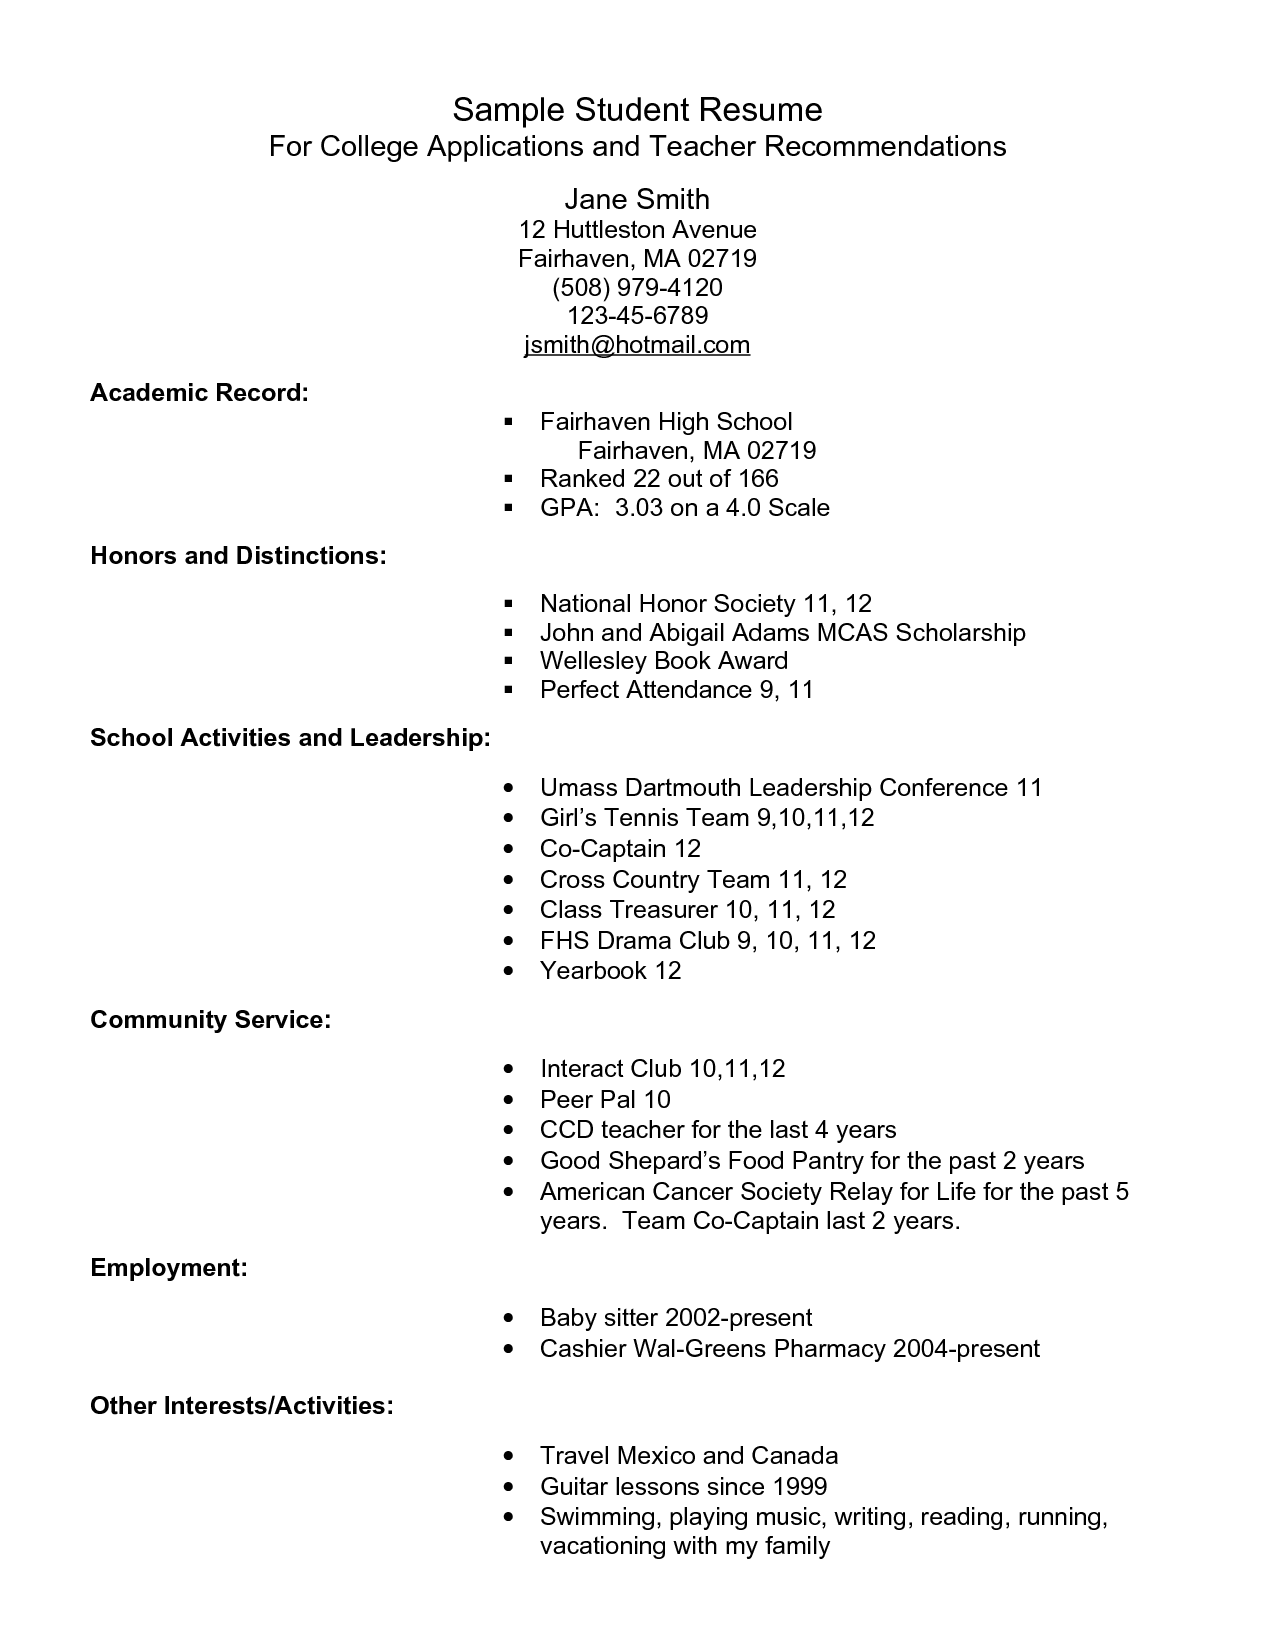 Example Resume For High School Students For College Applications Sample  Student Resume   PDF By Smapdi59  Examples Of College Resumes